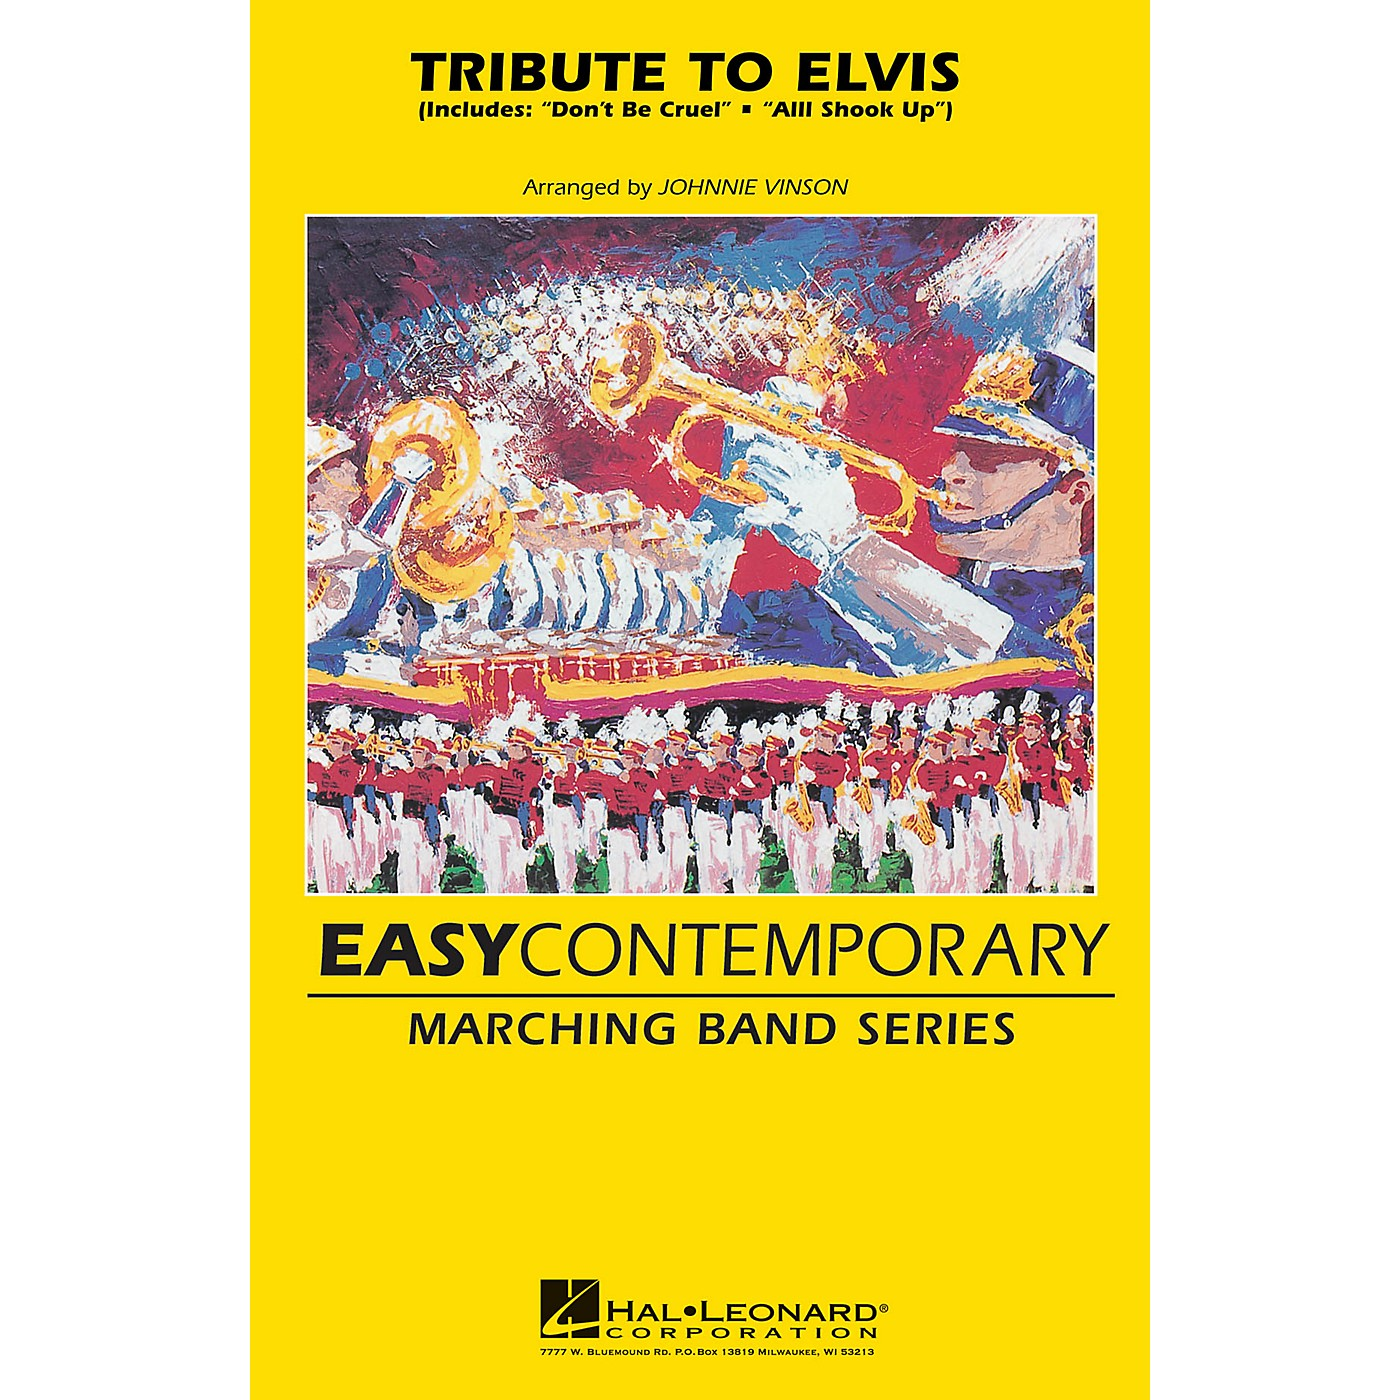 Hal Leonard Tribute To Elvis Marching Band Level 2 by Elvis Presley Arranged by Johnnie Vinson thumbnail